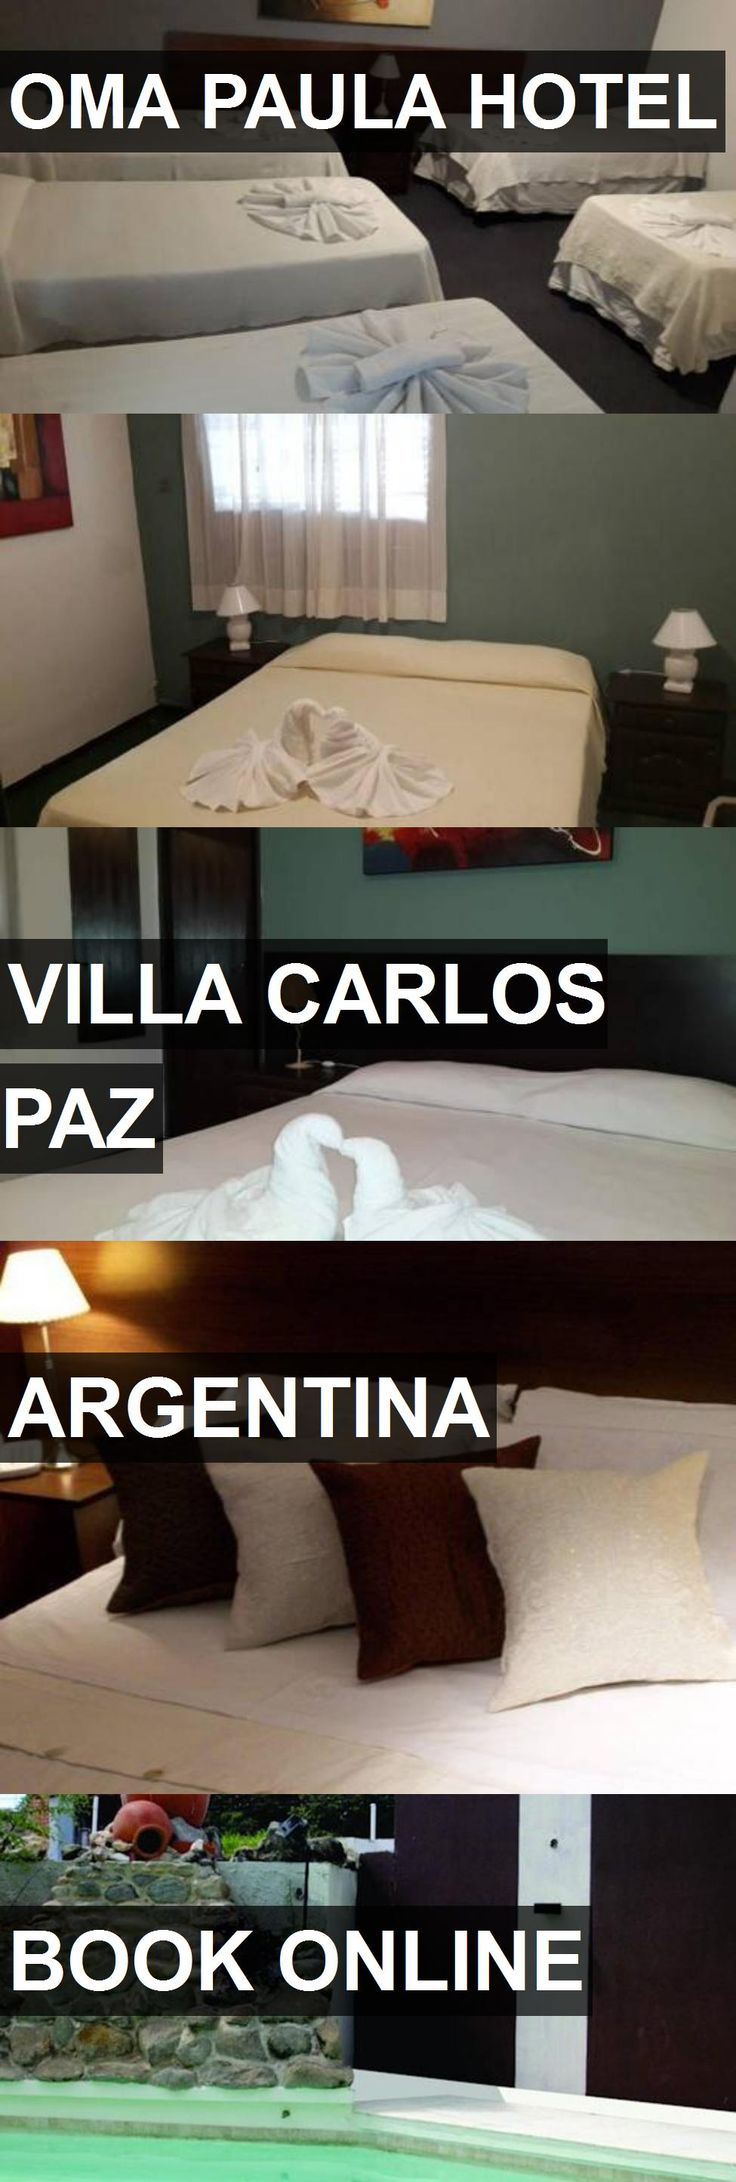 OMA PAULA HOTEL in Villa Carlos Paz, Argentina. For more information, photos, reviews and best prices please follow the link. #Argentina #VillaCarlosPaz #travel #vacation #hotel